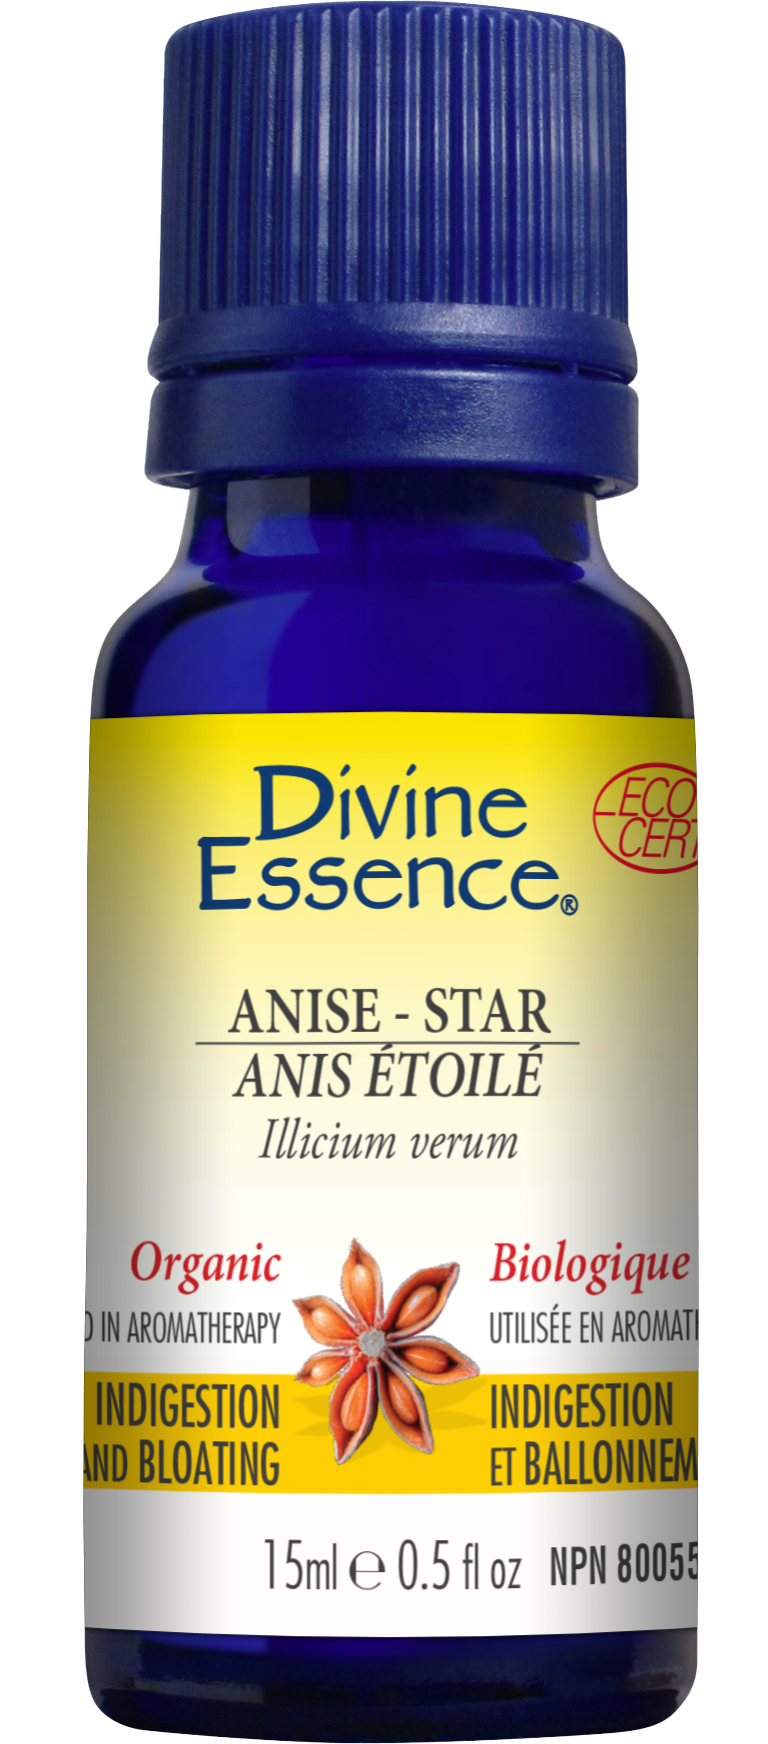 Anise - Star 15ml